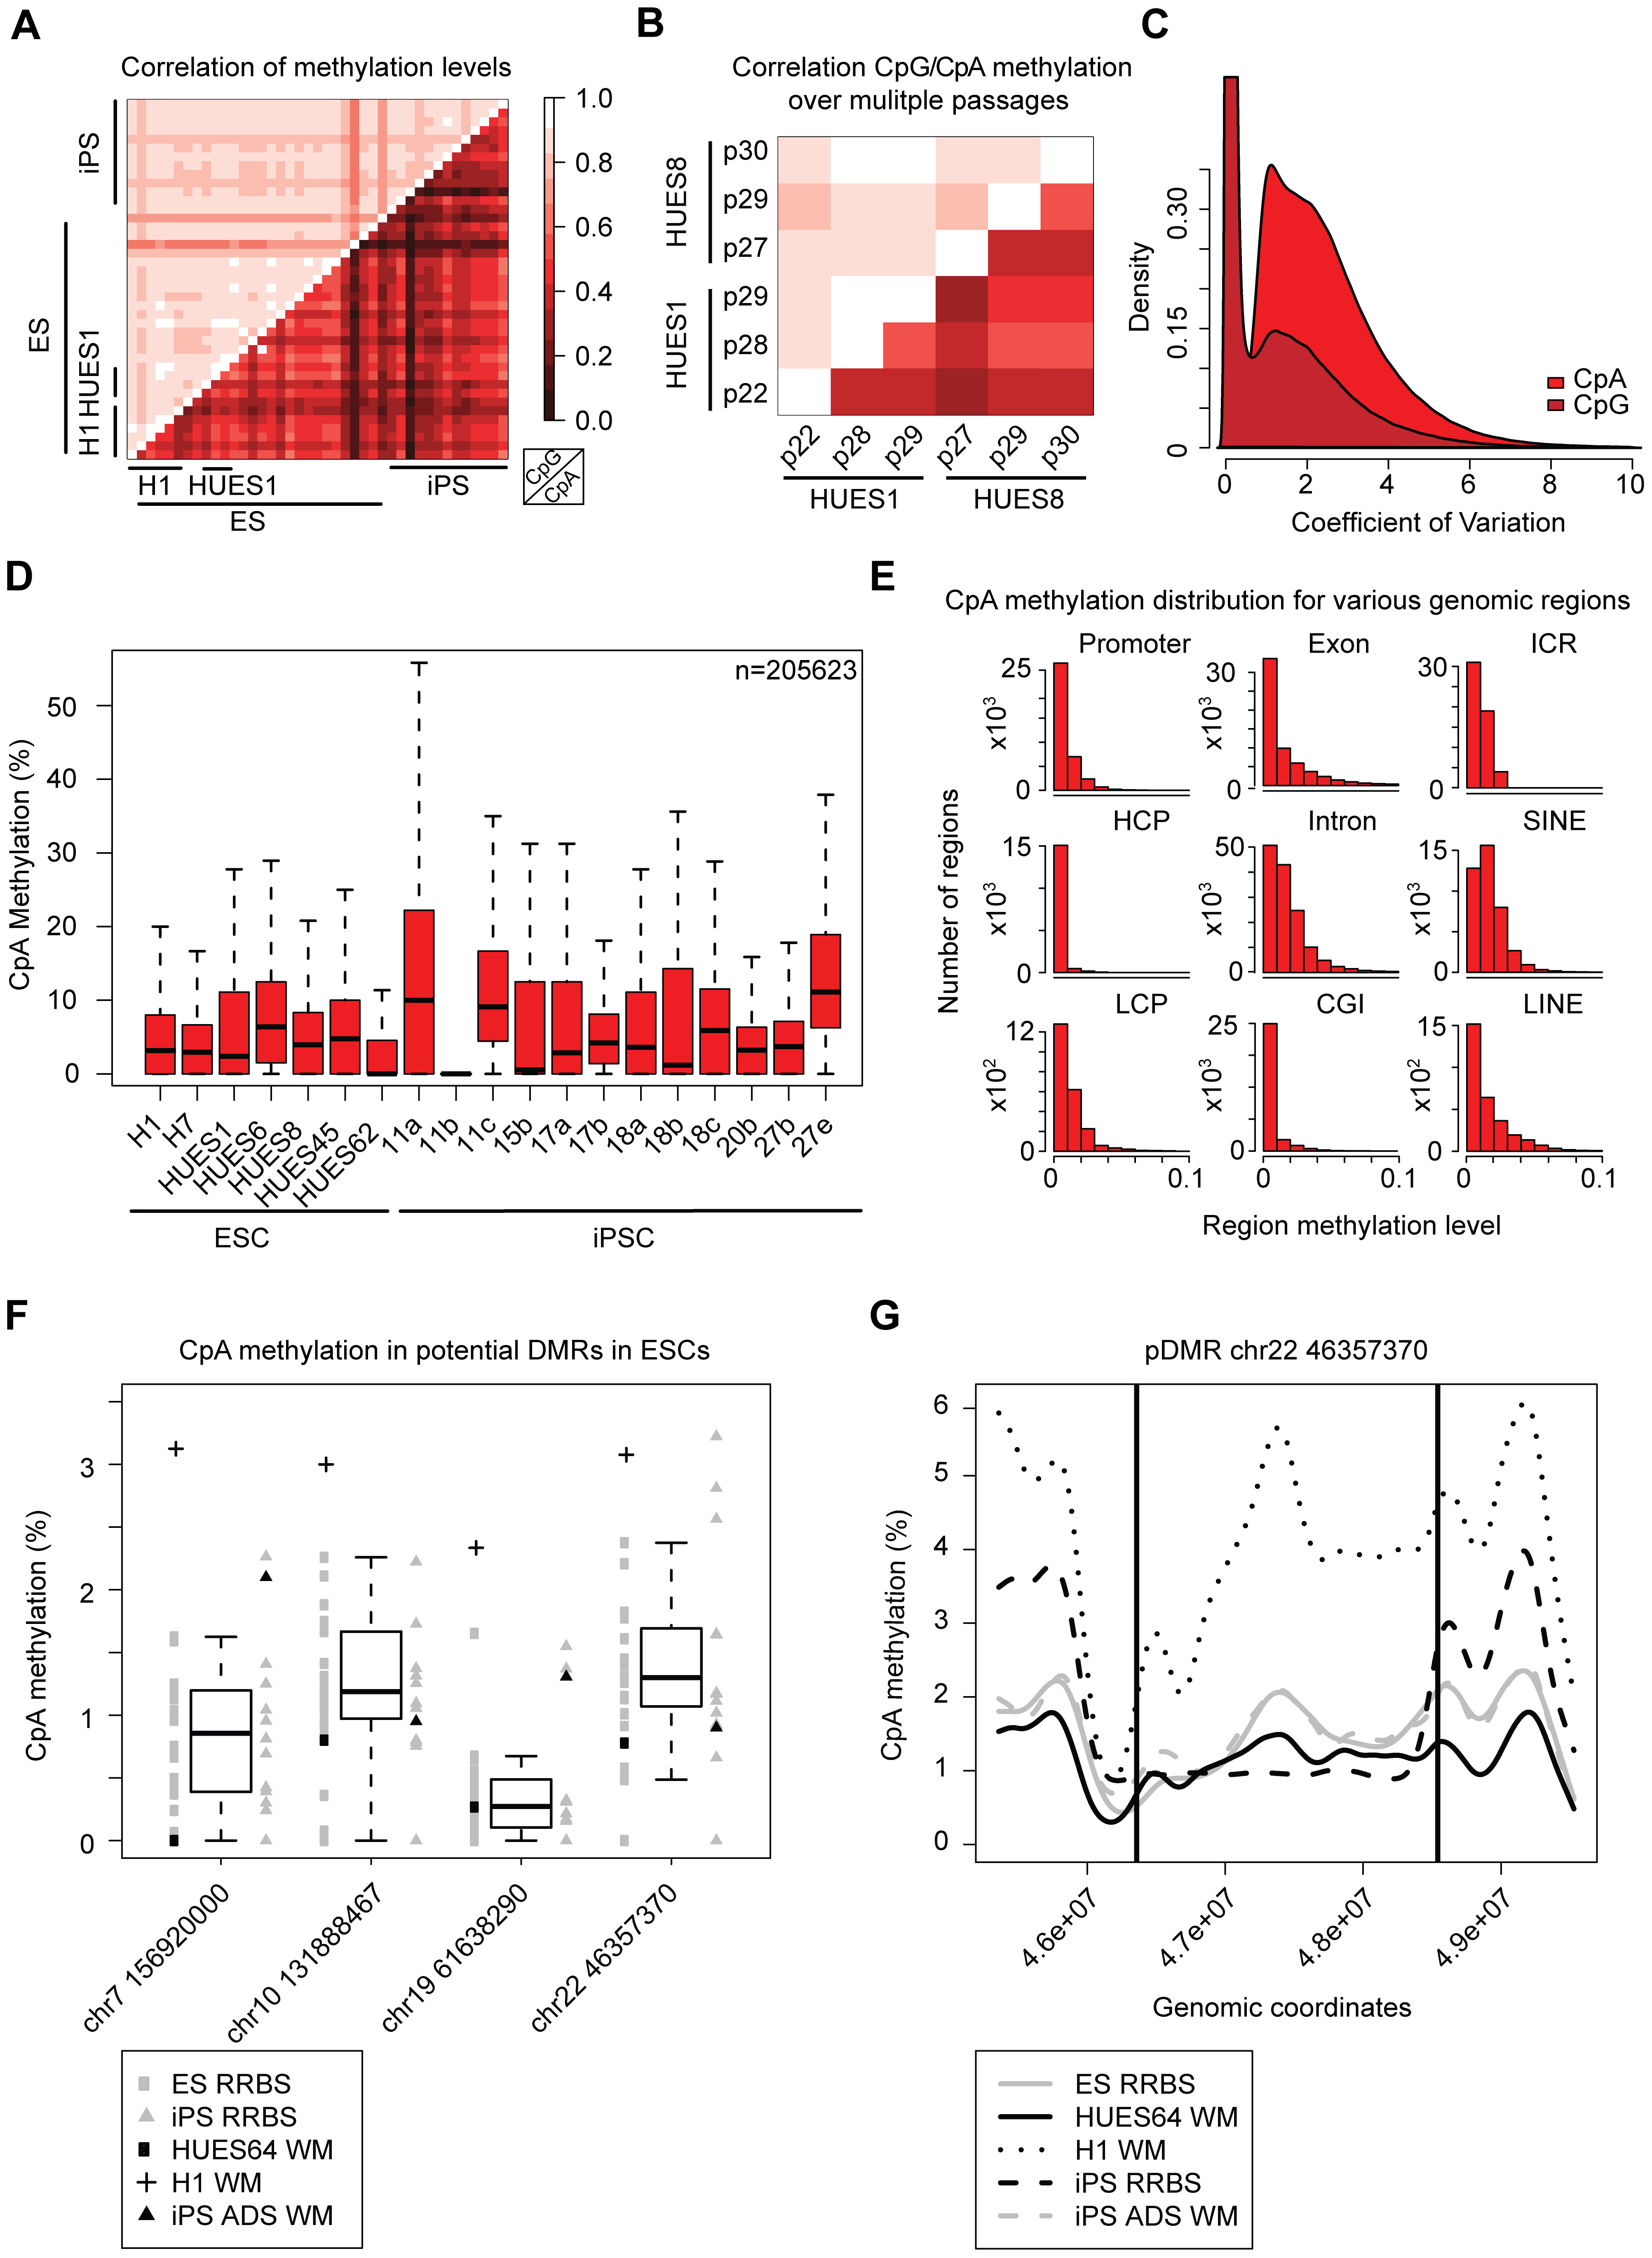 CpA methylation shows little conservation over several passages.